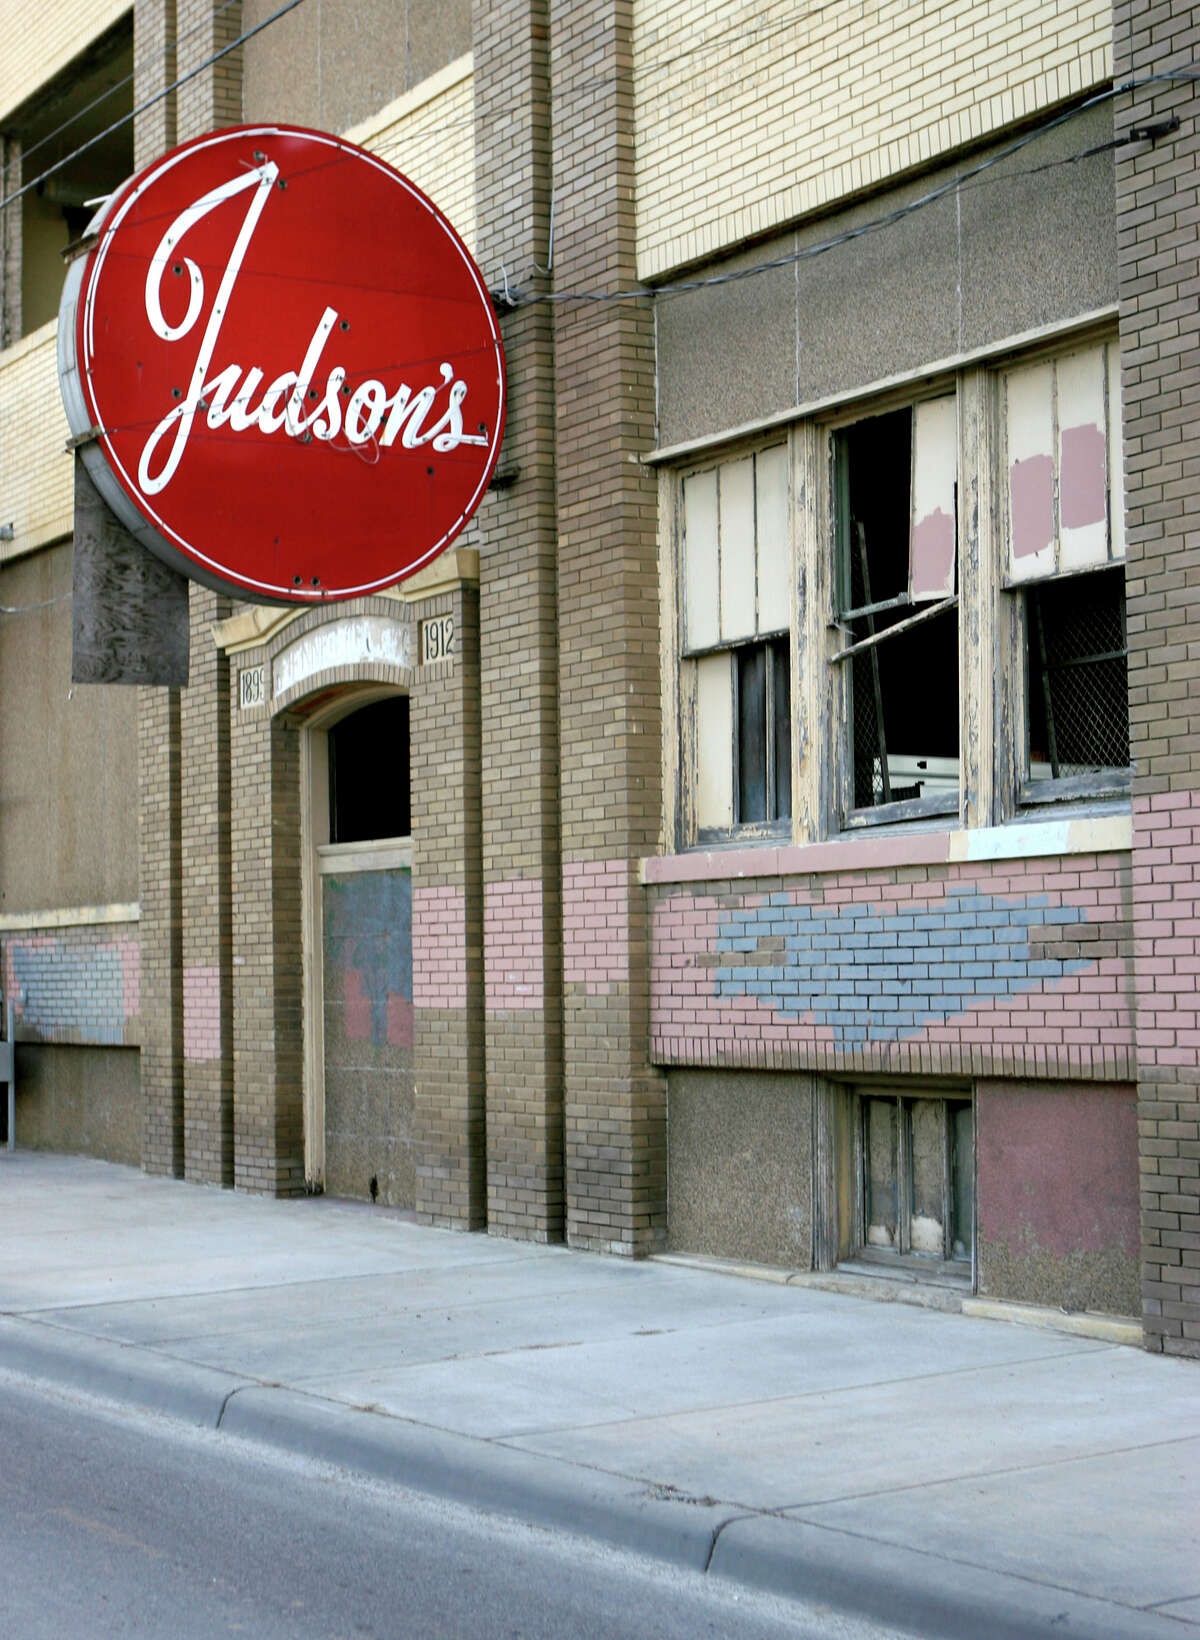 In 2007, developer Phillip Allen renovated the Judson Candy Factory building into lofts.